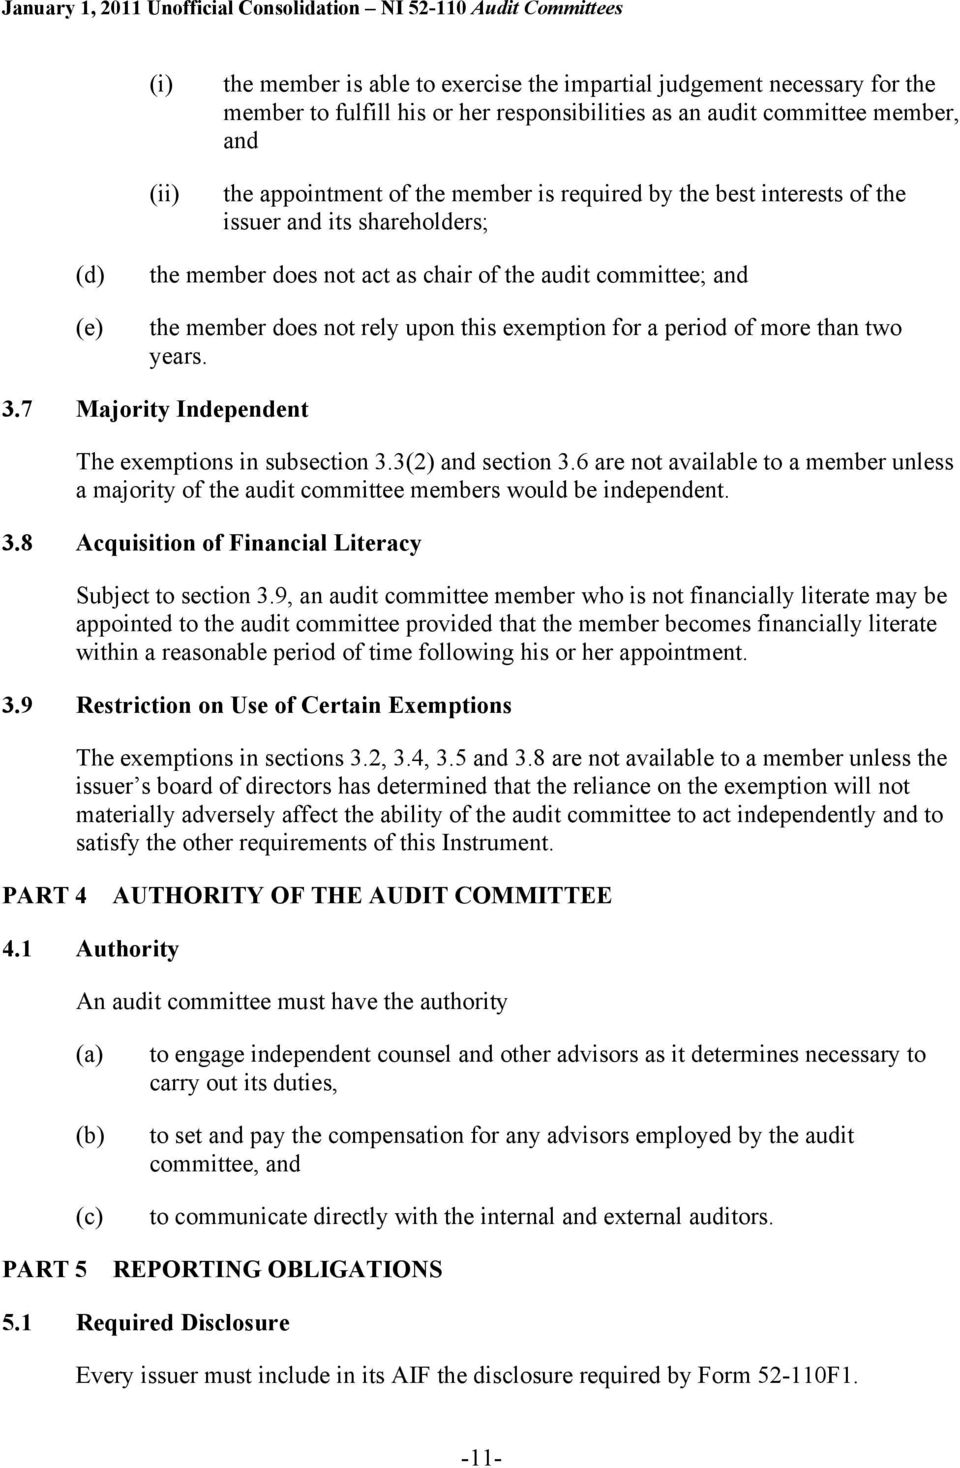 more than two years. 3.7 Majority Independent The exemptions in subsection 3.3(2) and section 3.6 are not available to a member unless a majority of the audit committee members would be independent.